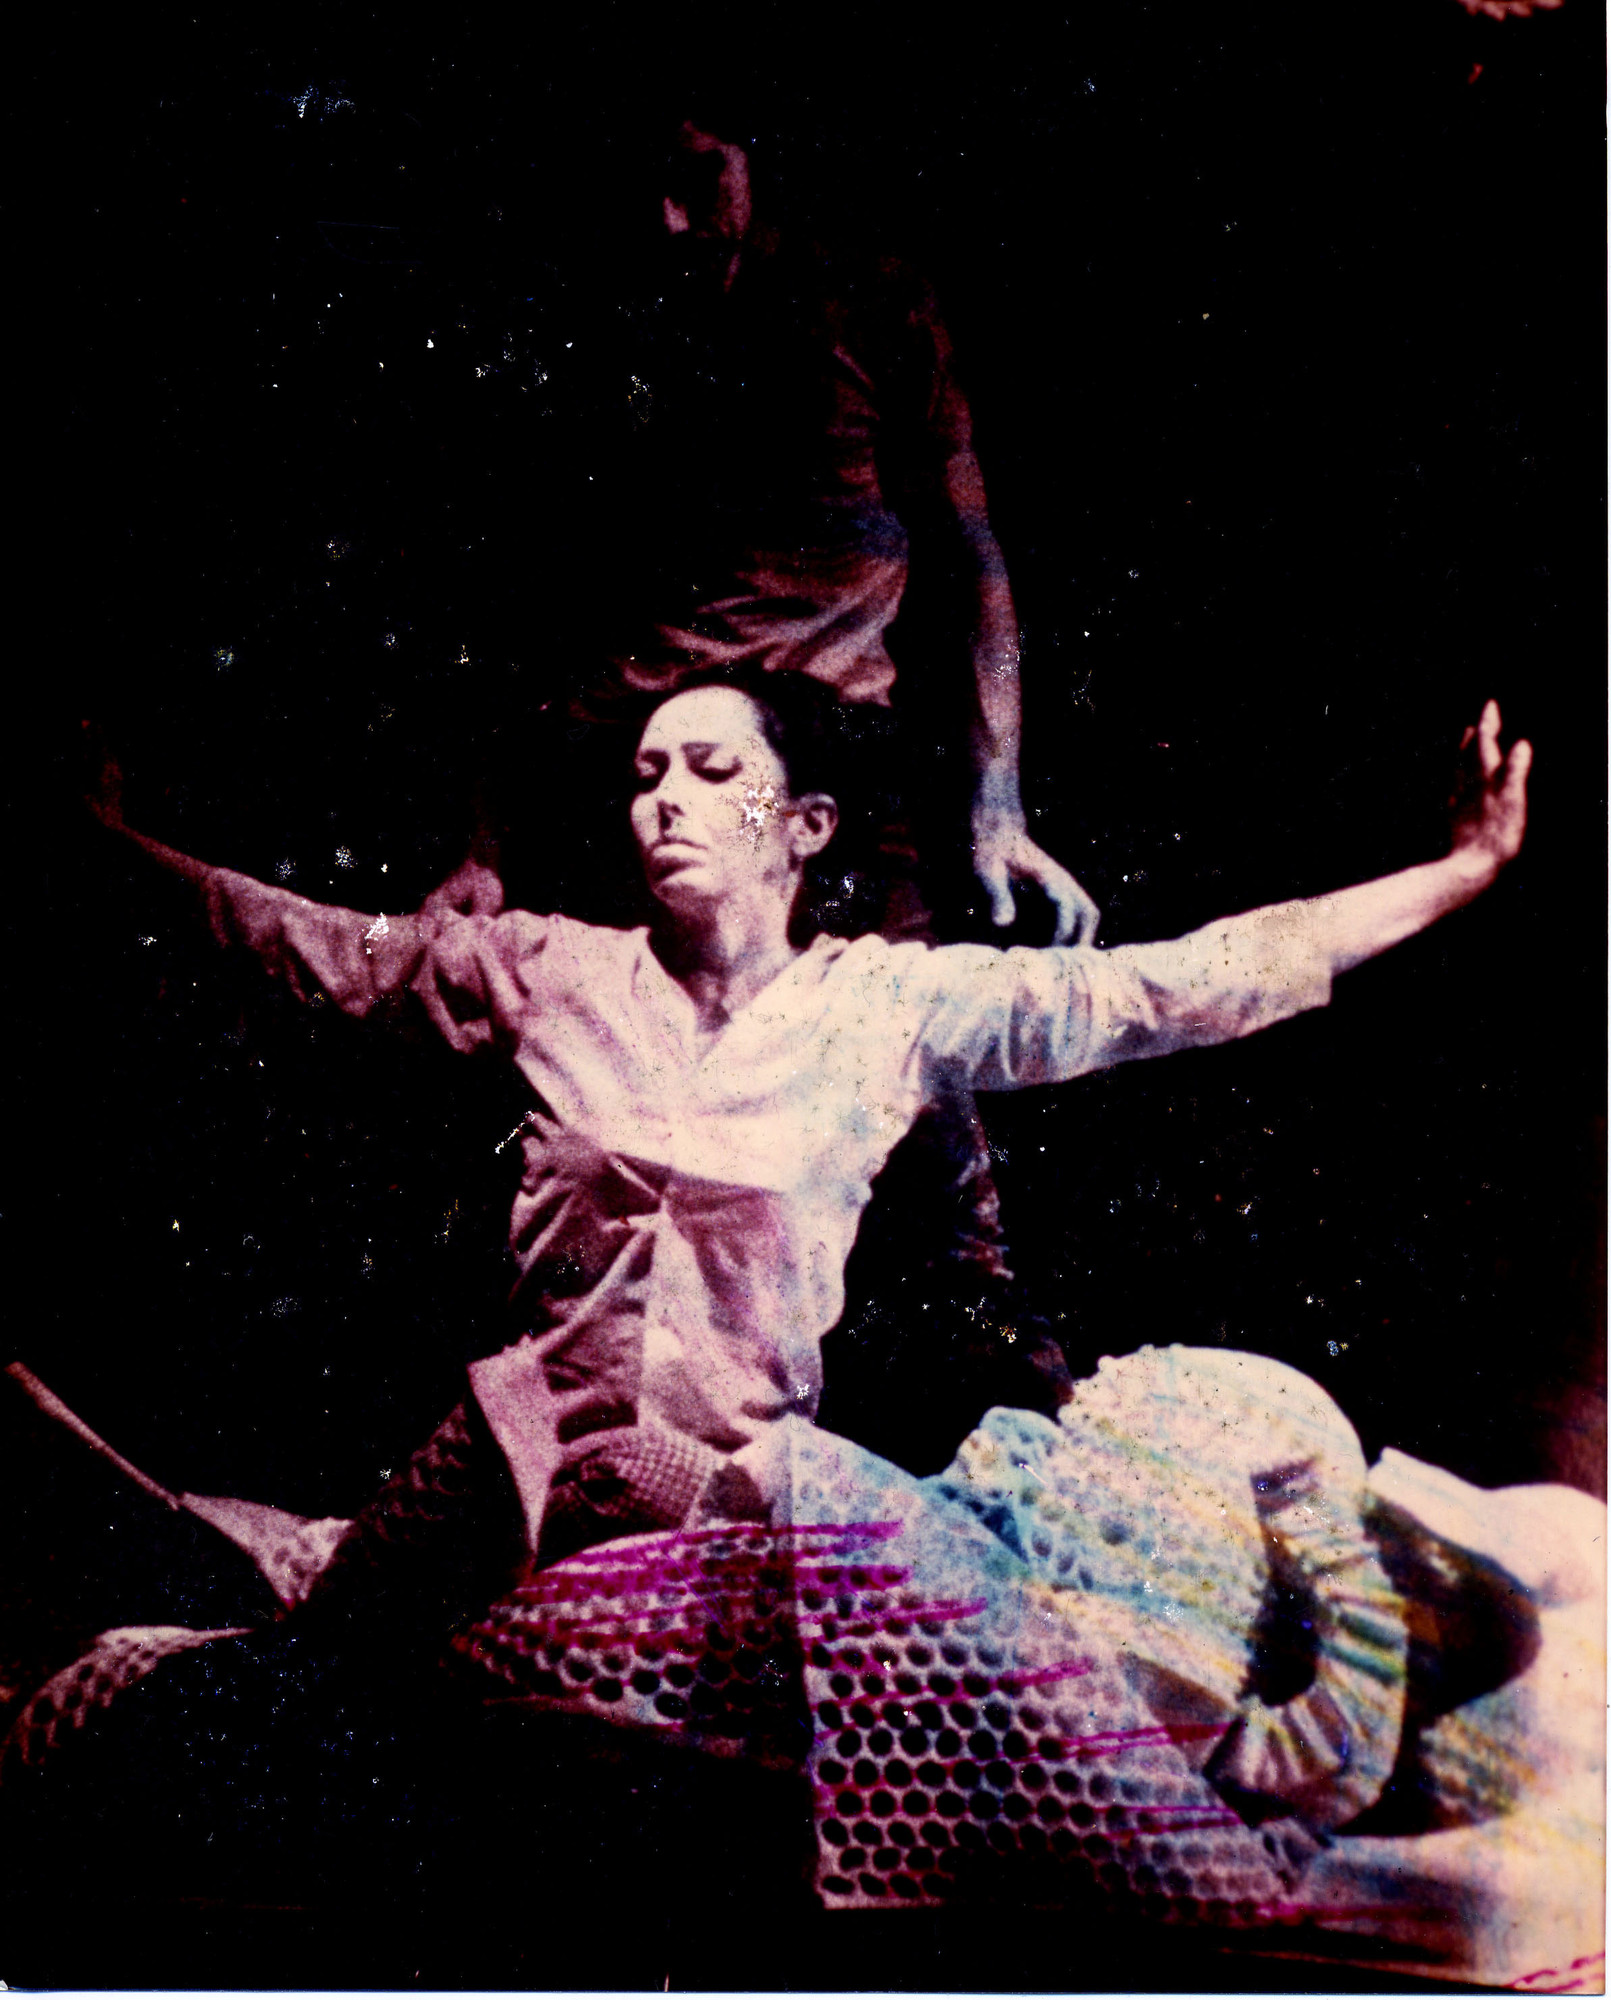 Carolee Schneemann. Snows, Martinique Theater, 1967. © 2018 Carolee Schneemann. Courtesy of the artist, P.P.O.W, New York, and Galerie Lelong & Co., New York. Photo: Herbert Migdoll